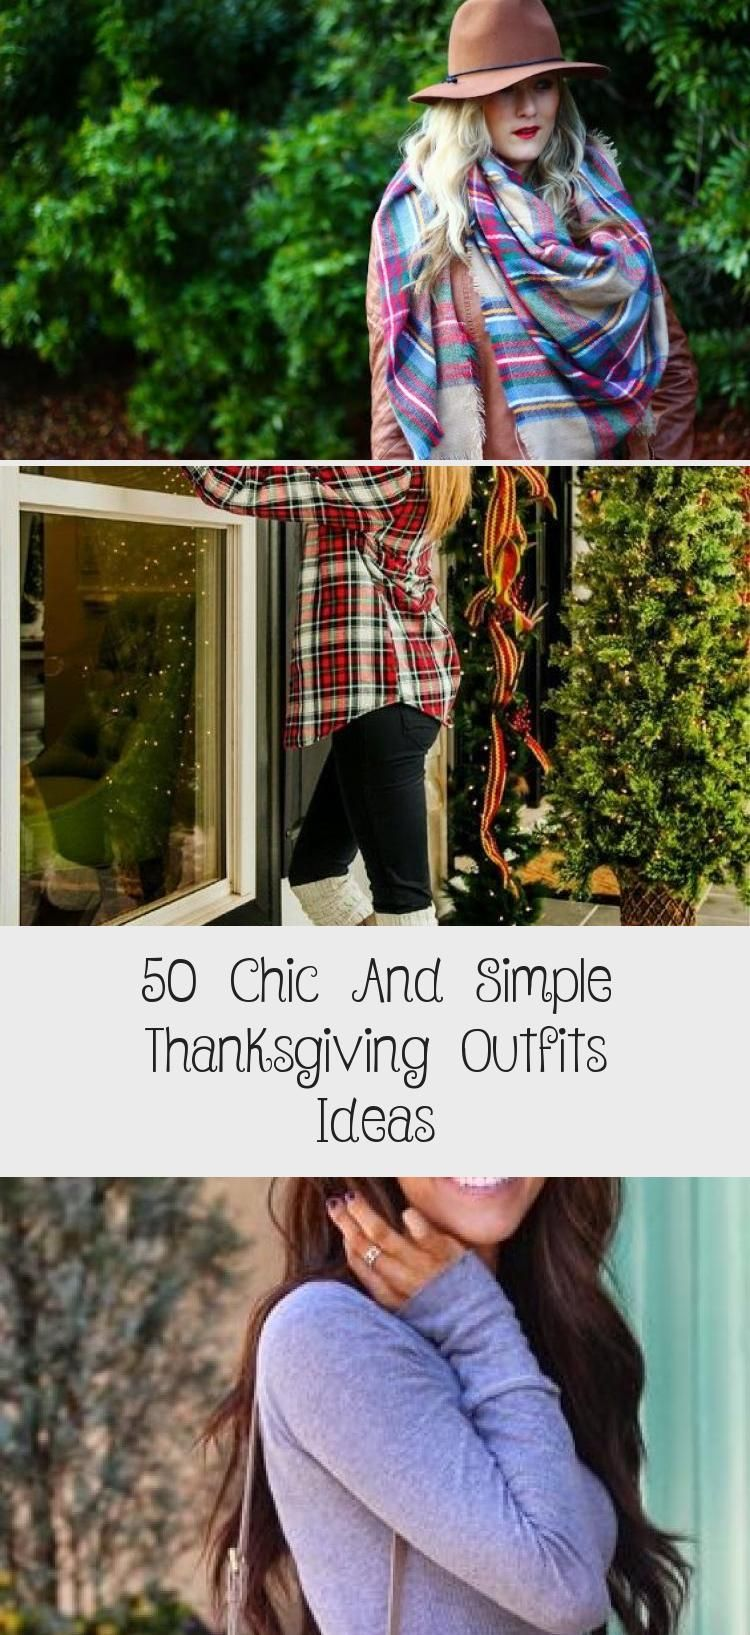 50 Chic And Simple Thanksgiving Outfits Ideas - Women #thanksgivingoutfit